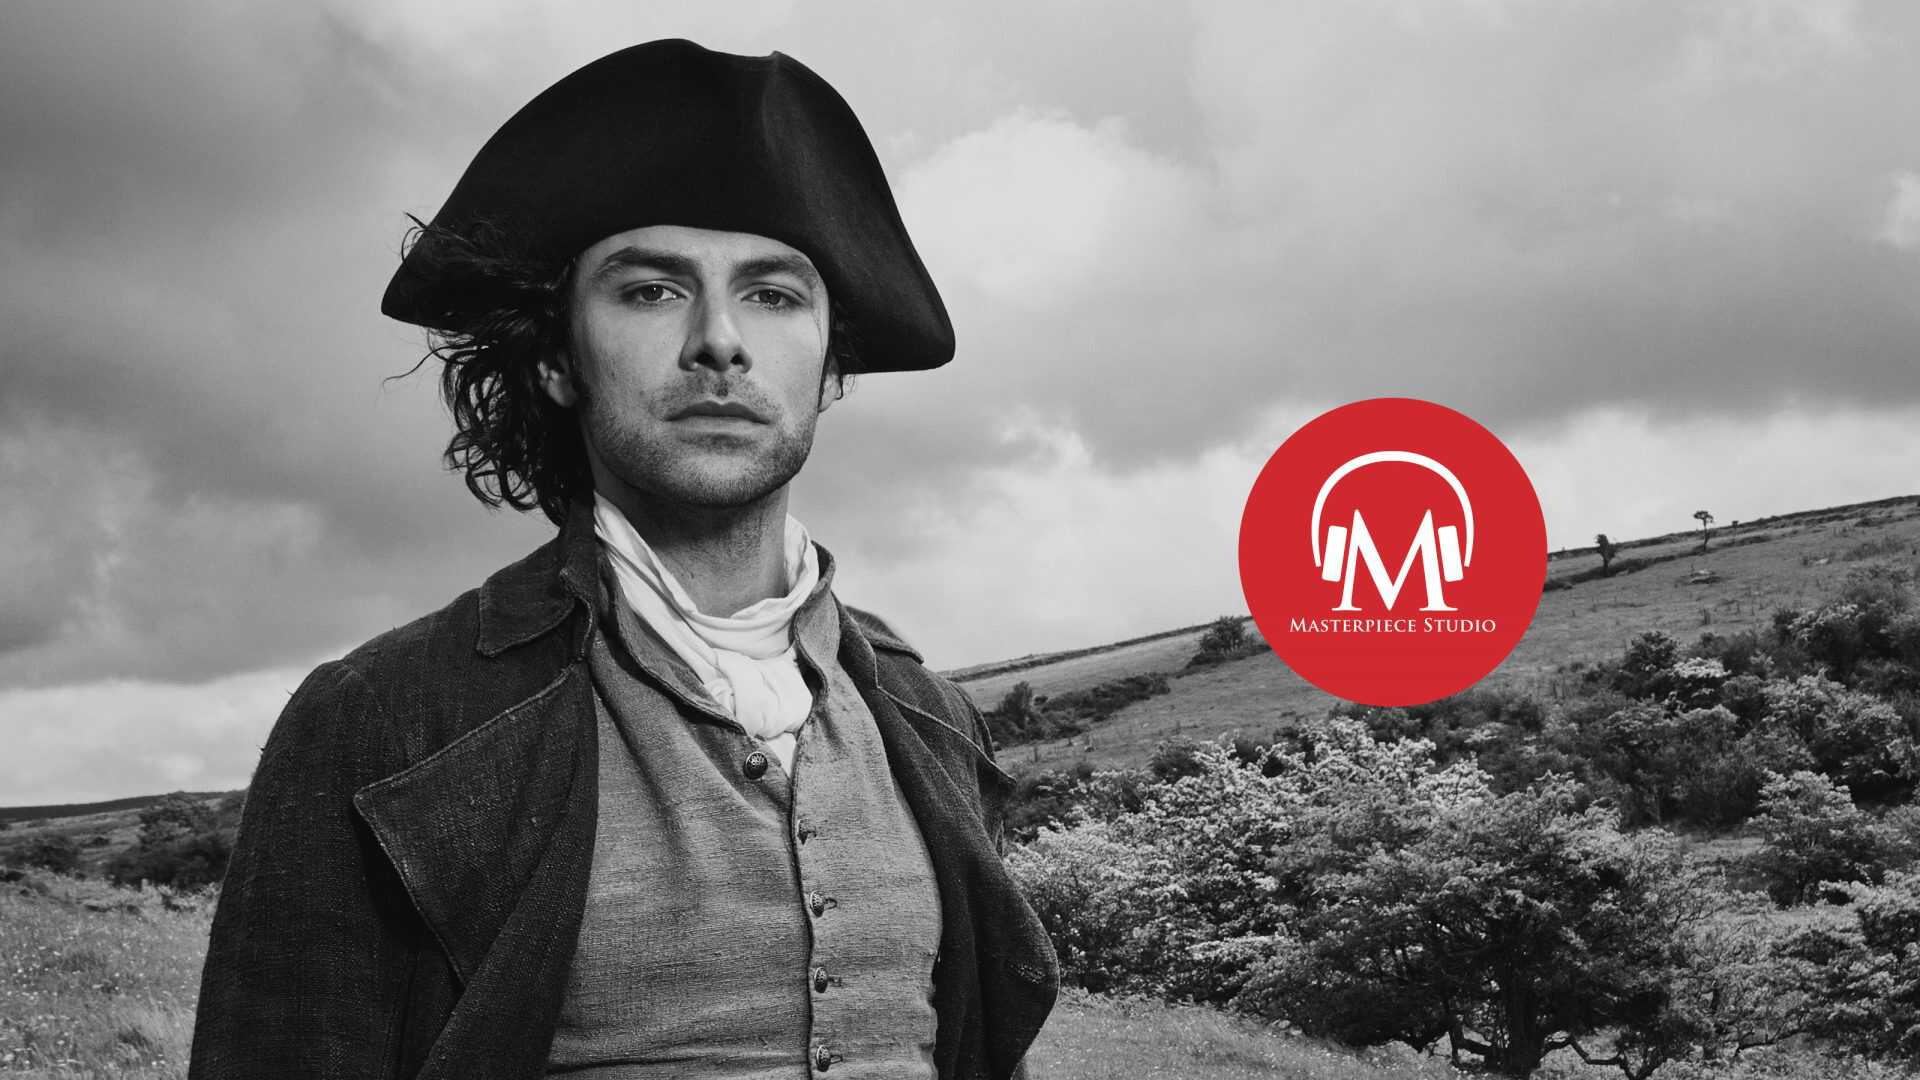 aidan turner vkaidan turner instagram, aidan turner 2019, aidan turner height, aidan turner gif, aidan turner girlfriend, aidan turner hobbit, aidan turner news, aidan turner wife, aidan turner young, aidan turner odessa 2019, aidan turner wiki, aidan turner kili, aidan turner brother, aidan turner new bond, aidan turner fan, aidan turner vk, aidan turner film, aidan turner wdw, aidan turner dog, aidan turner in the clinic